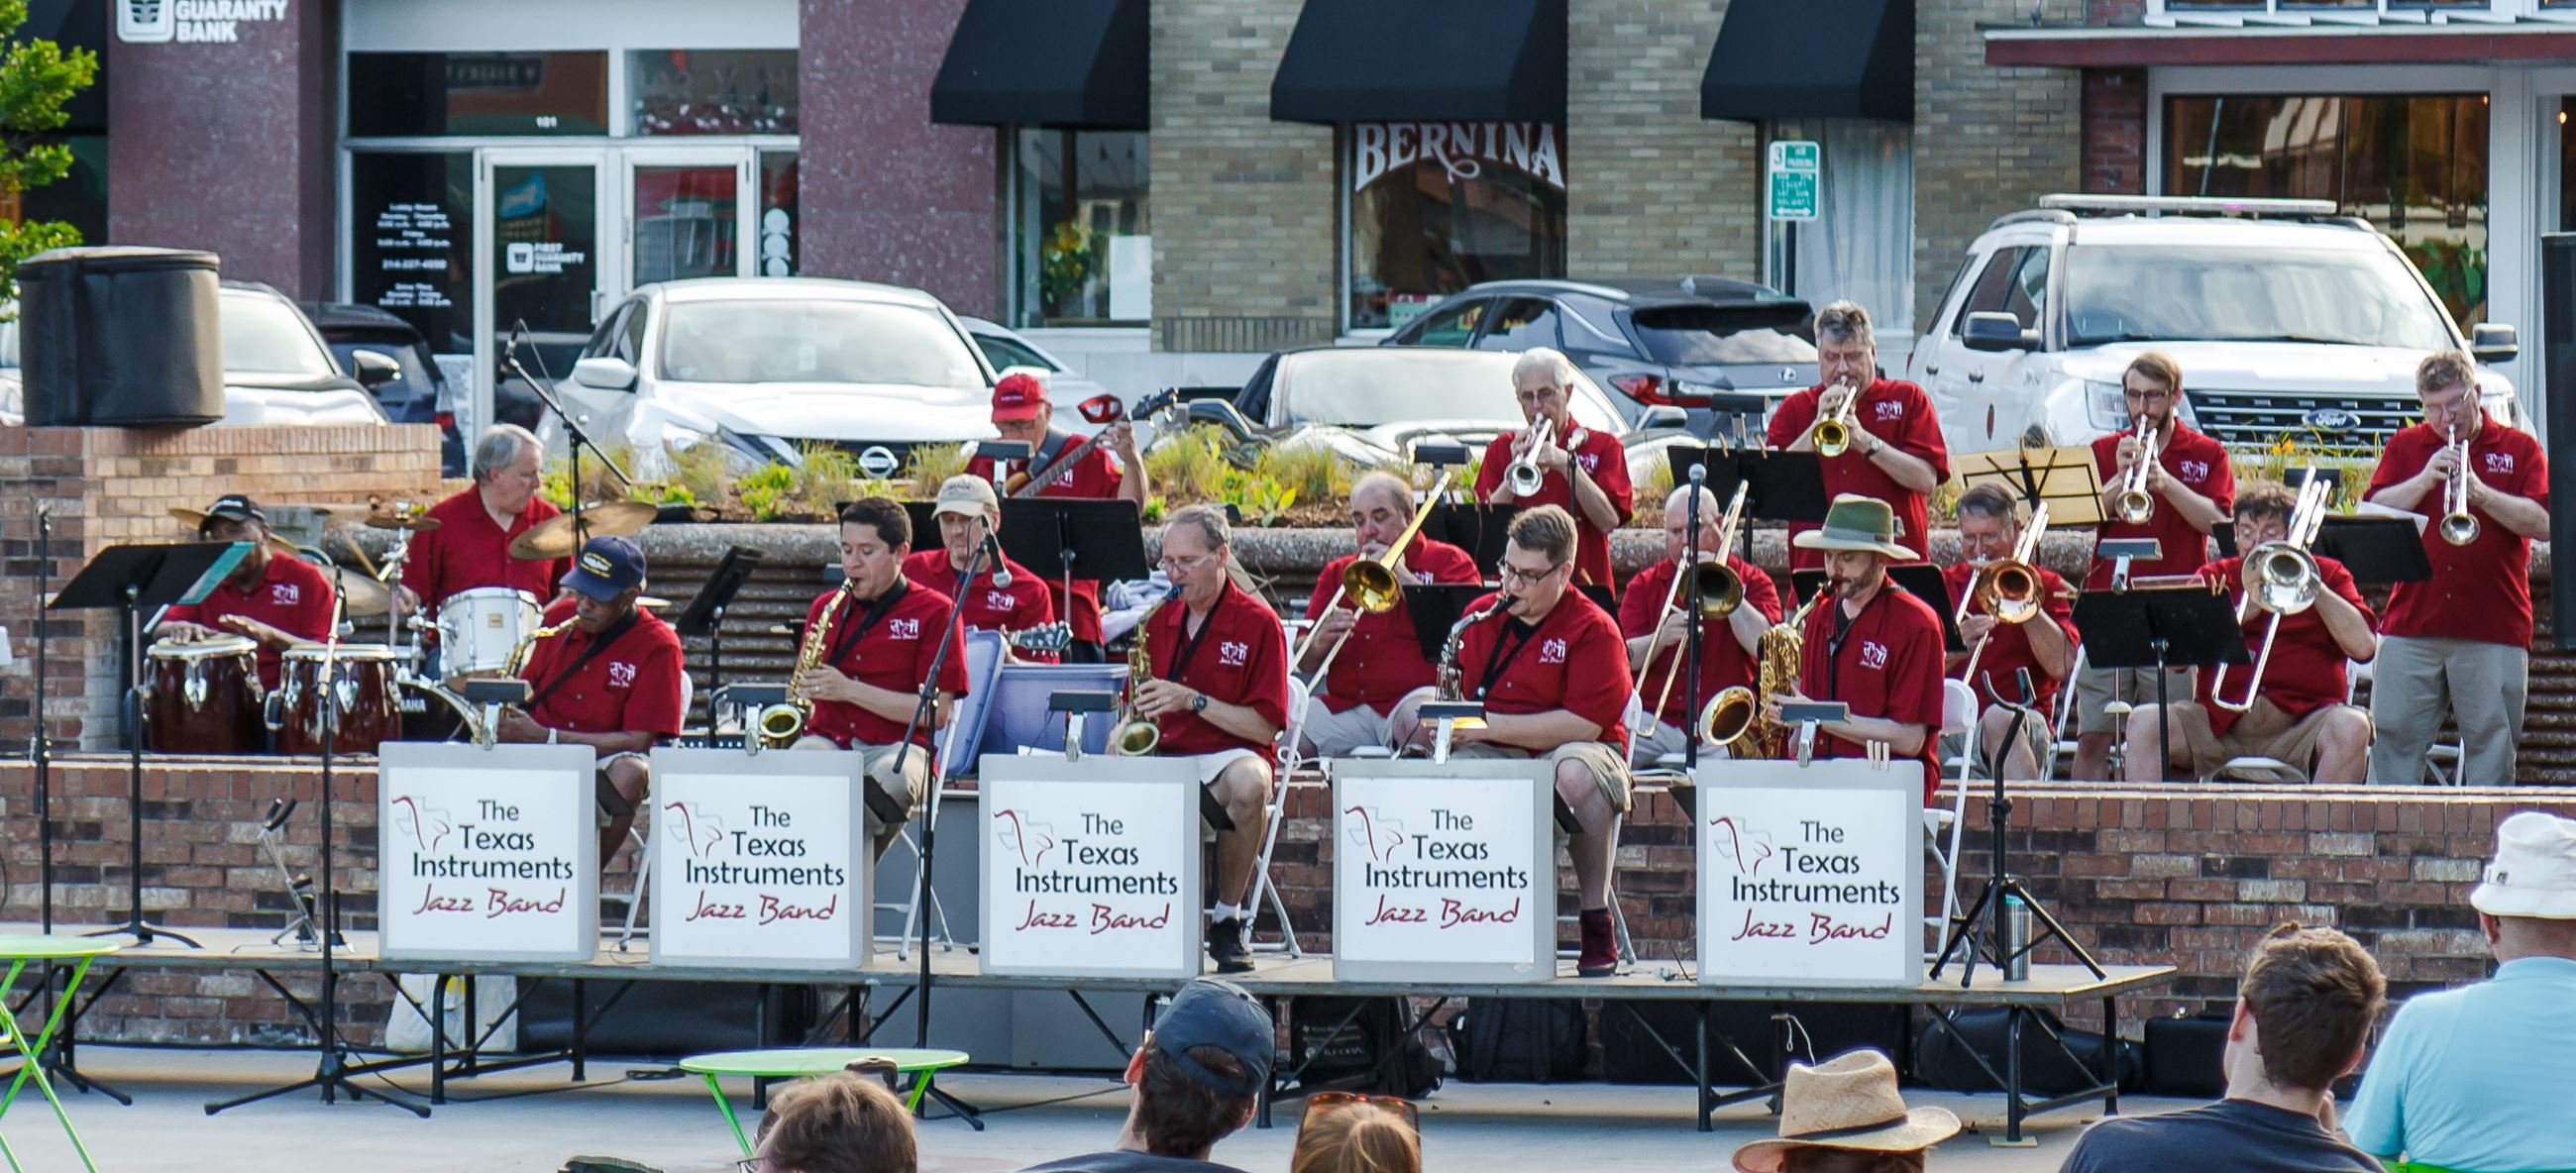 Texas Instruments Jazz Band playing instruments on the stage at the Downtown Garland Square